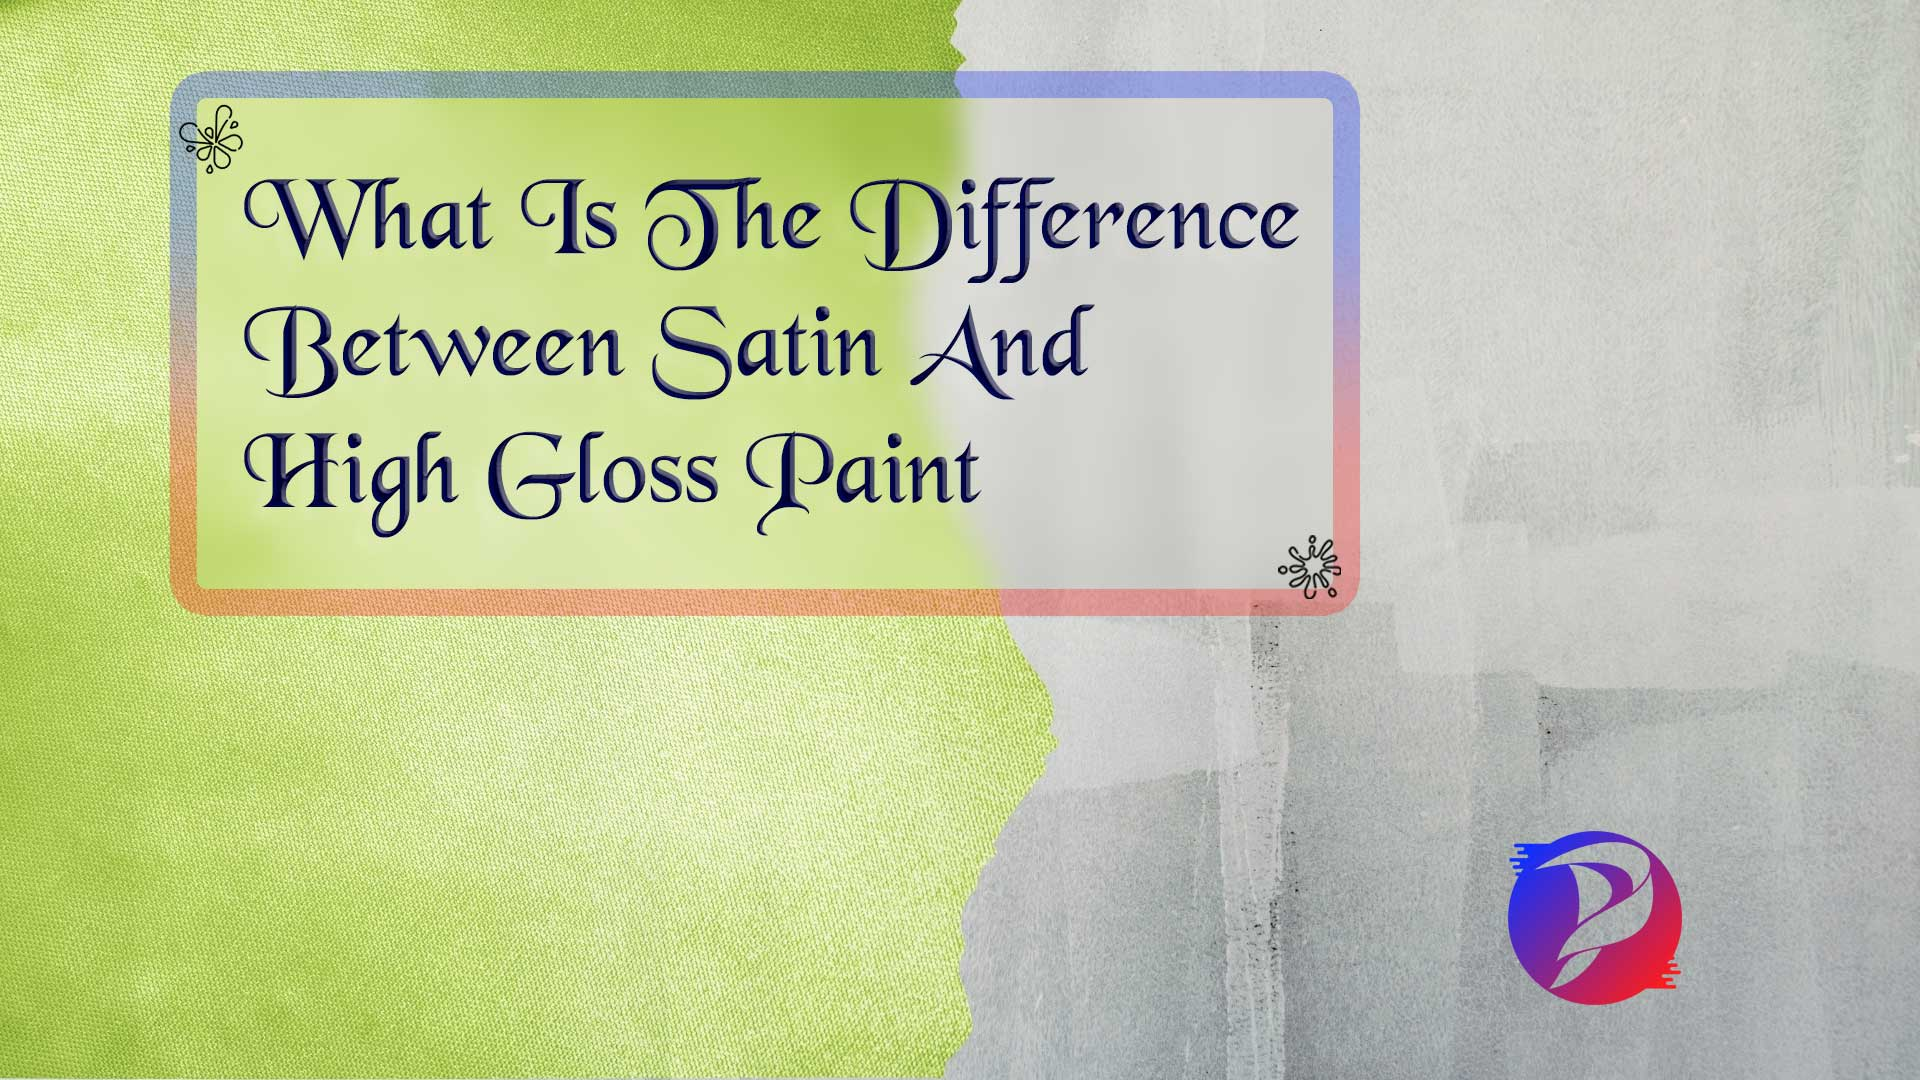 What is the difference between satin and high gloss paint